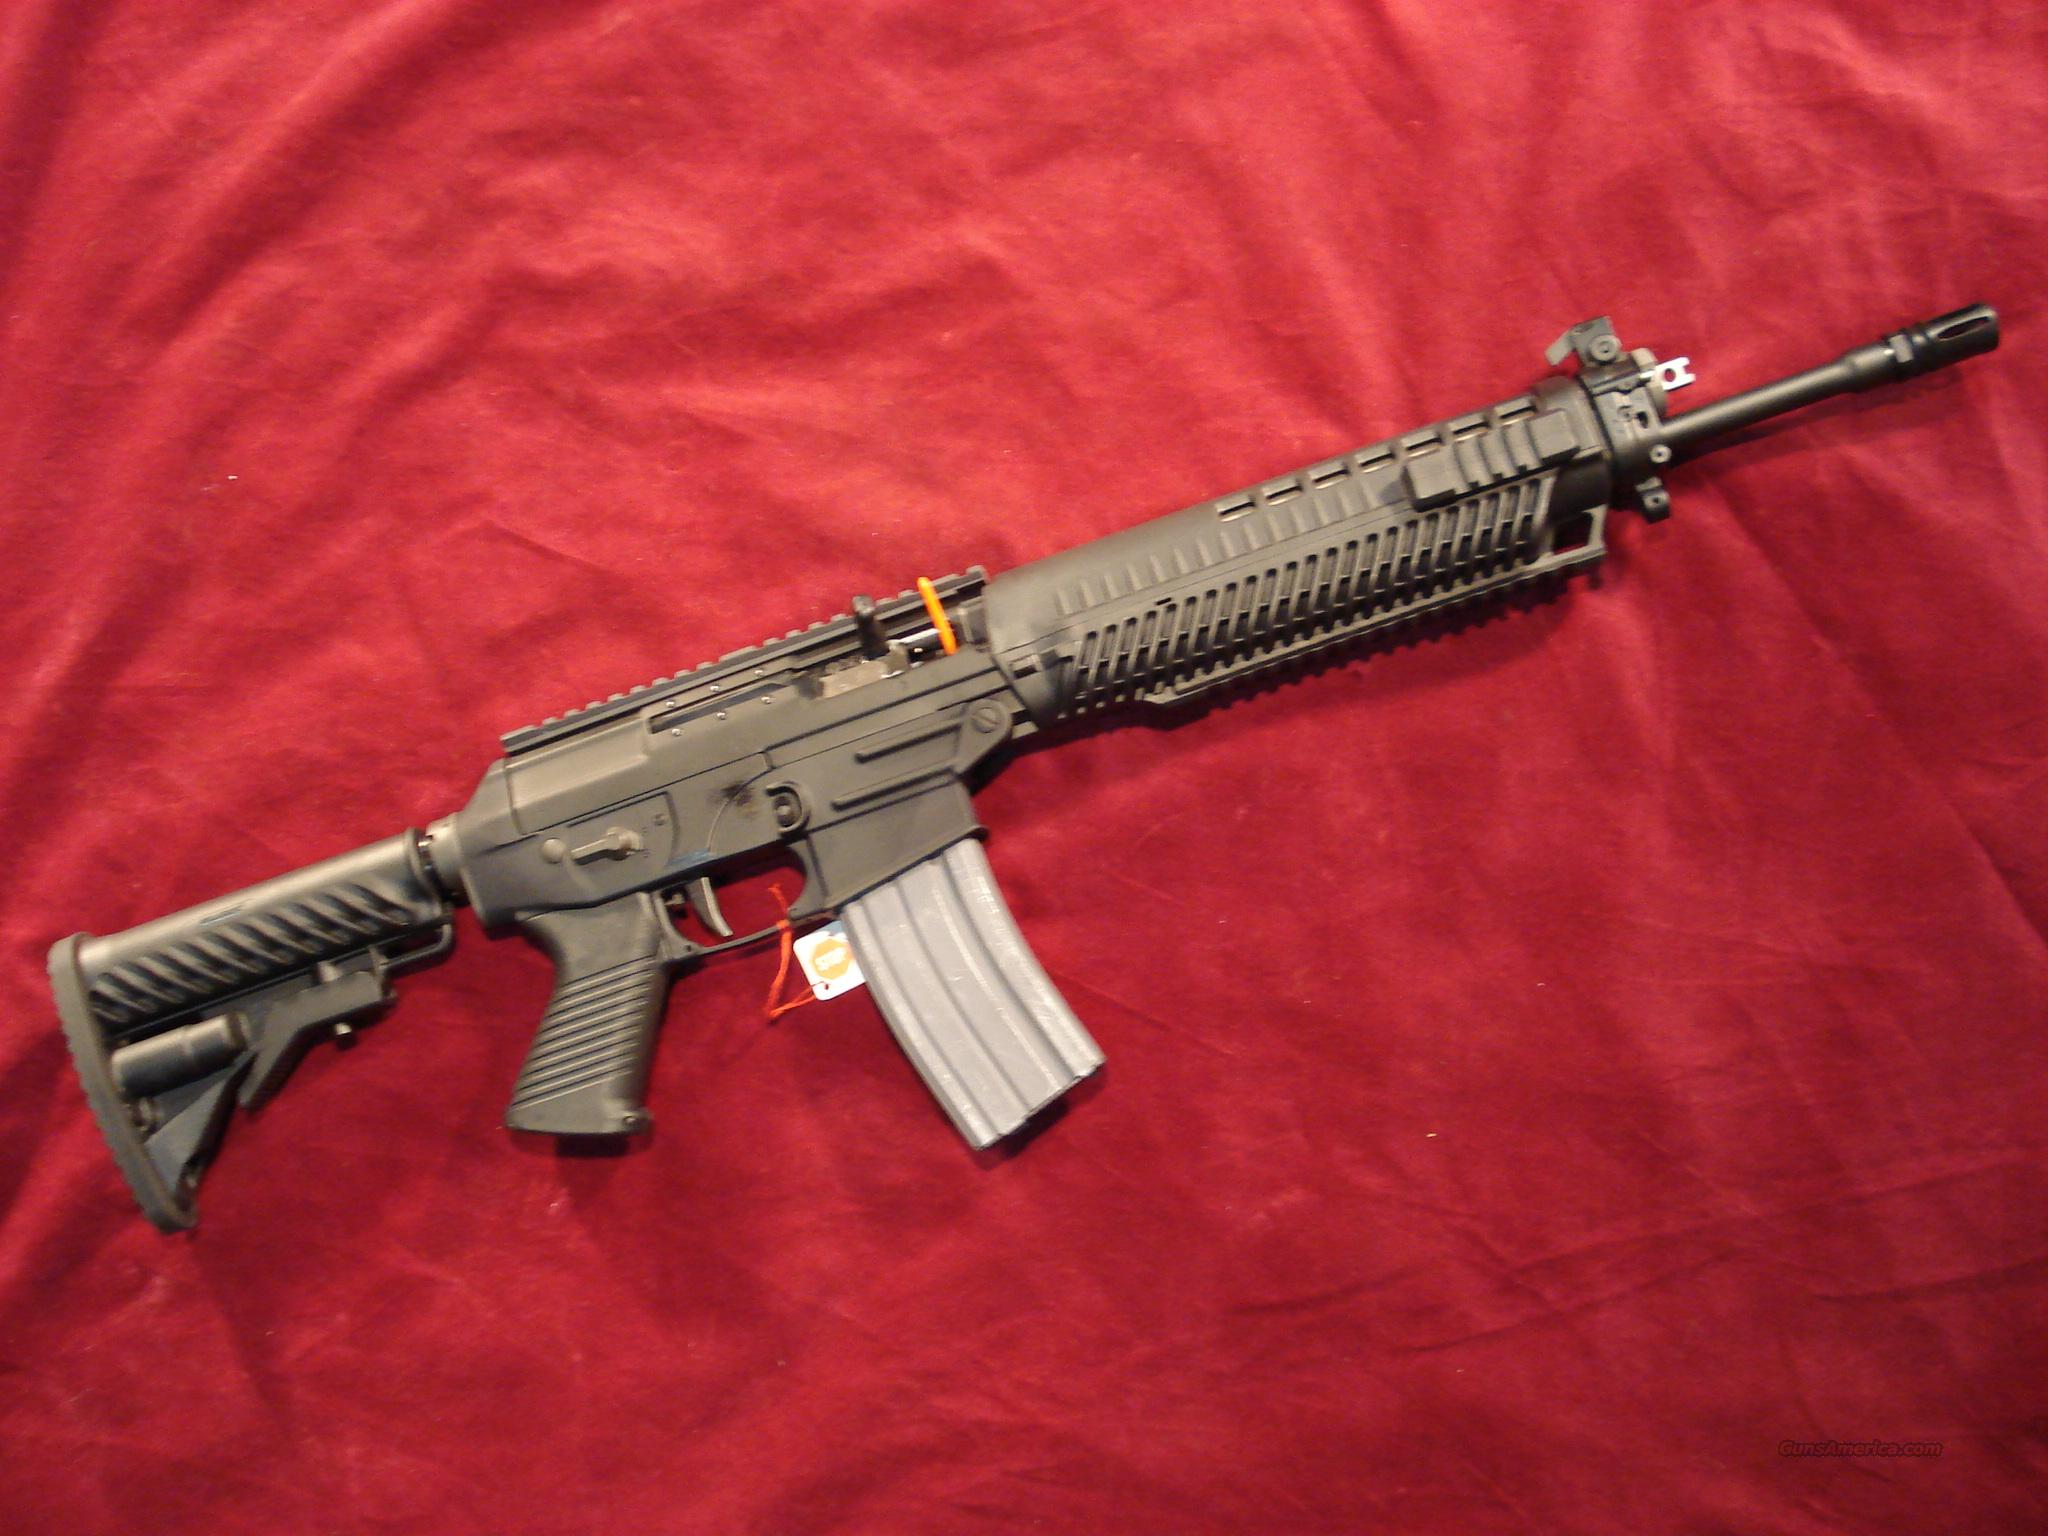 SIGARMS 556 CARBINE RIFLE W/ HALO SIGHT NEW   Guns > Rifles > Sig - Sauer/Sigarms Rifles